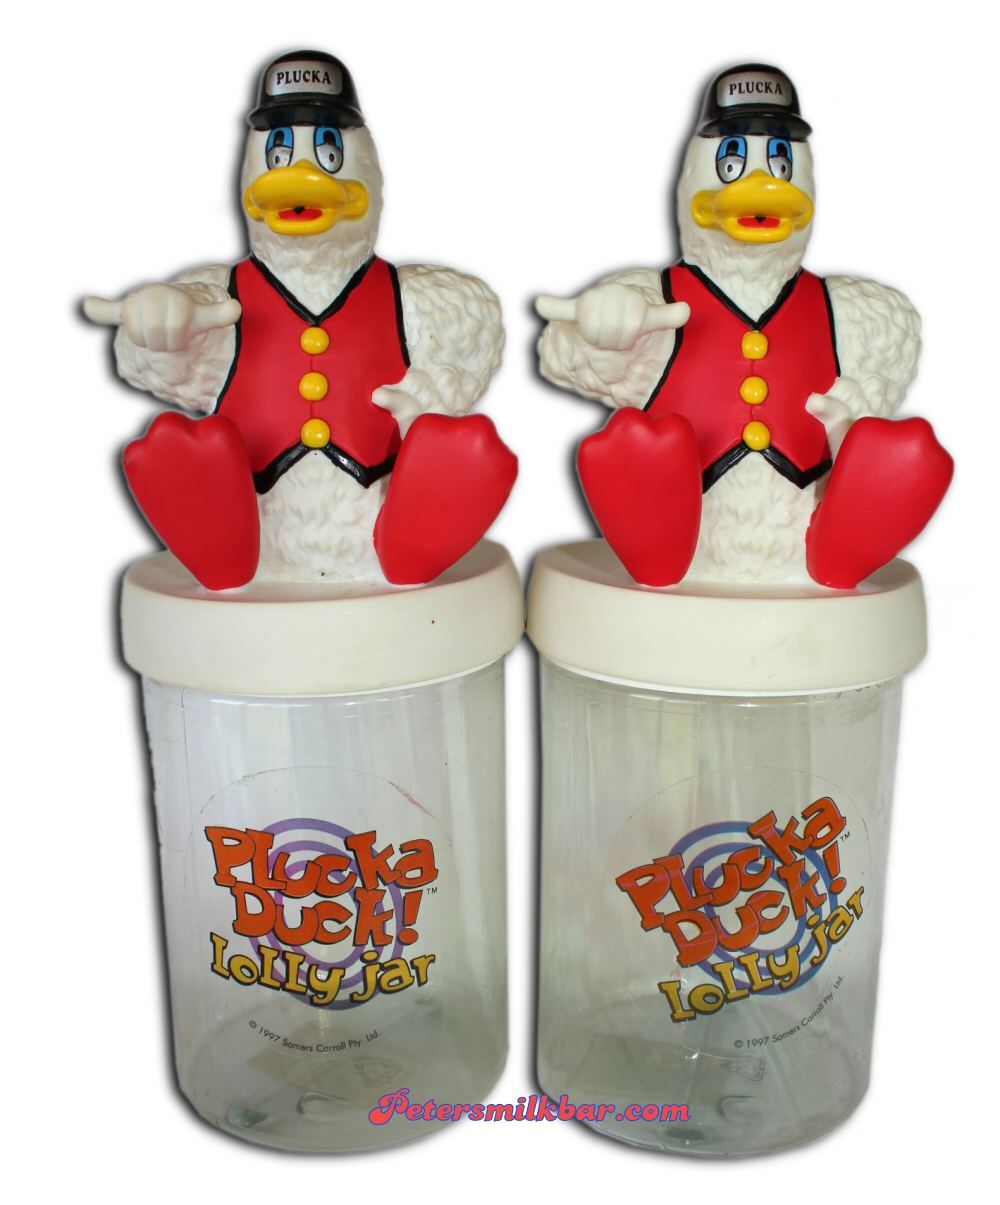 Old Plucka Duck Lolly Jar 1995